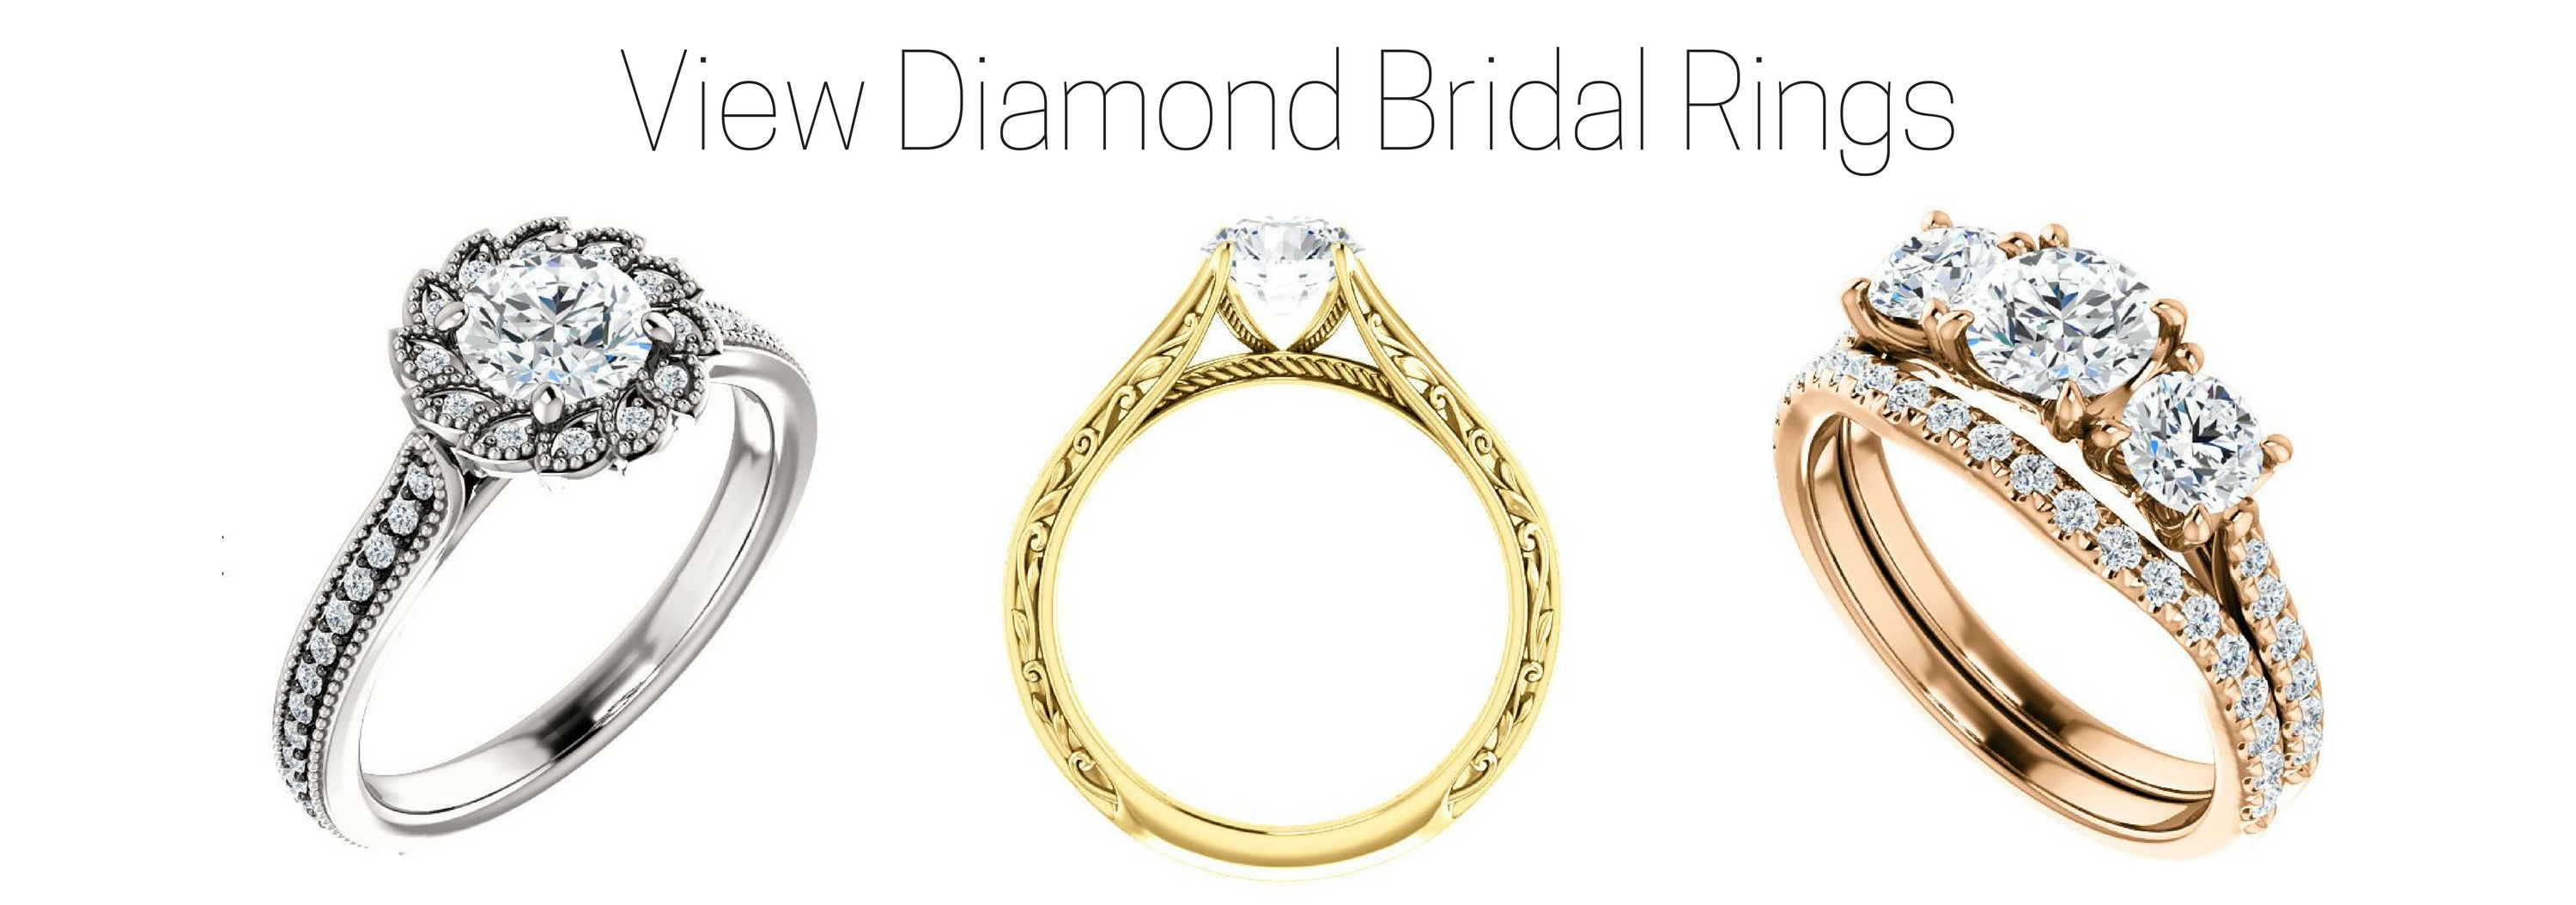 view_diamond_bridal_rings